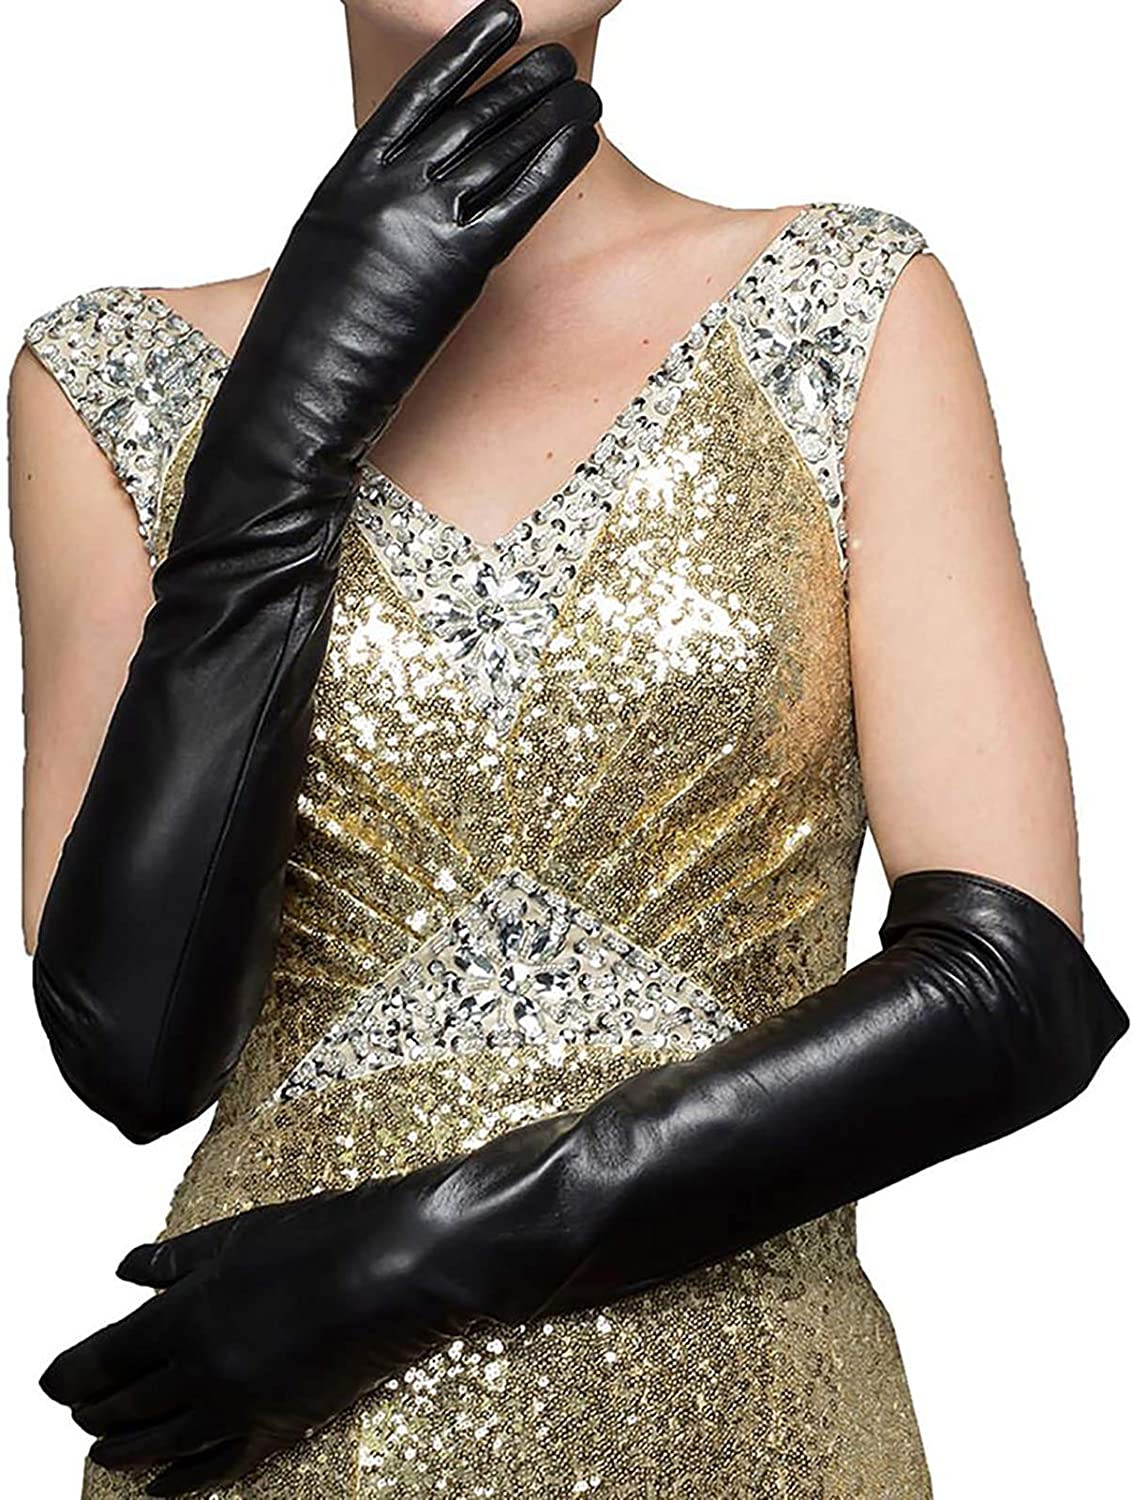 CosplayNow Women's Long Warm Gloves Elbow Length Leather Gloves Cold Weather Gloves